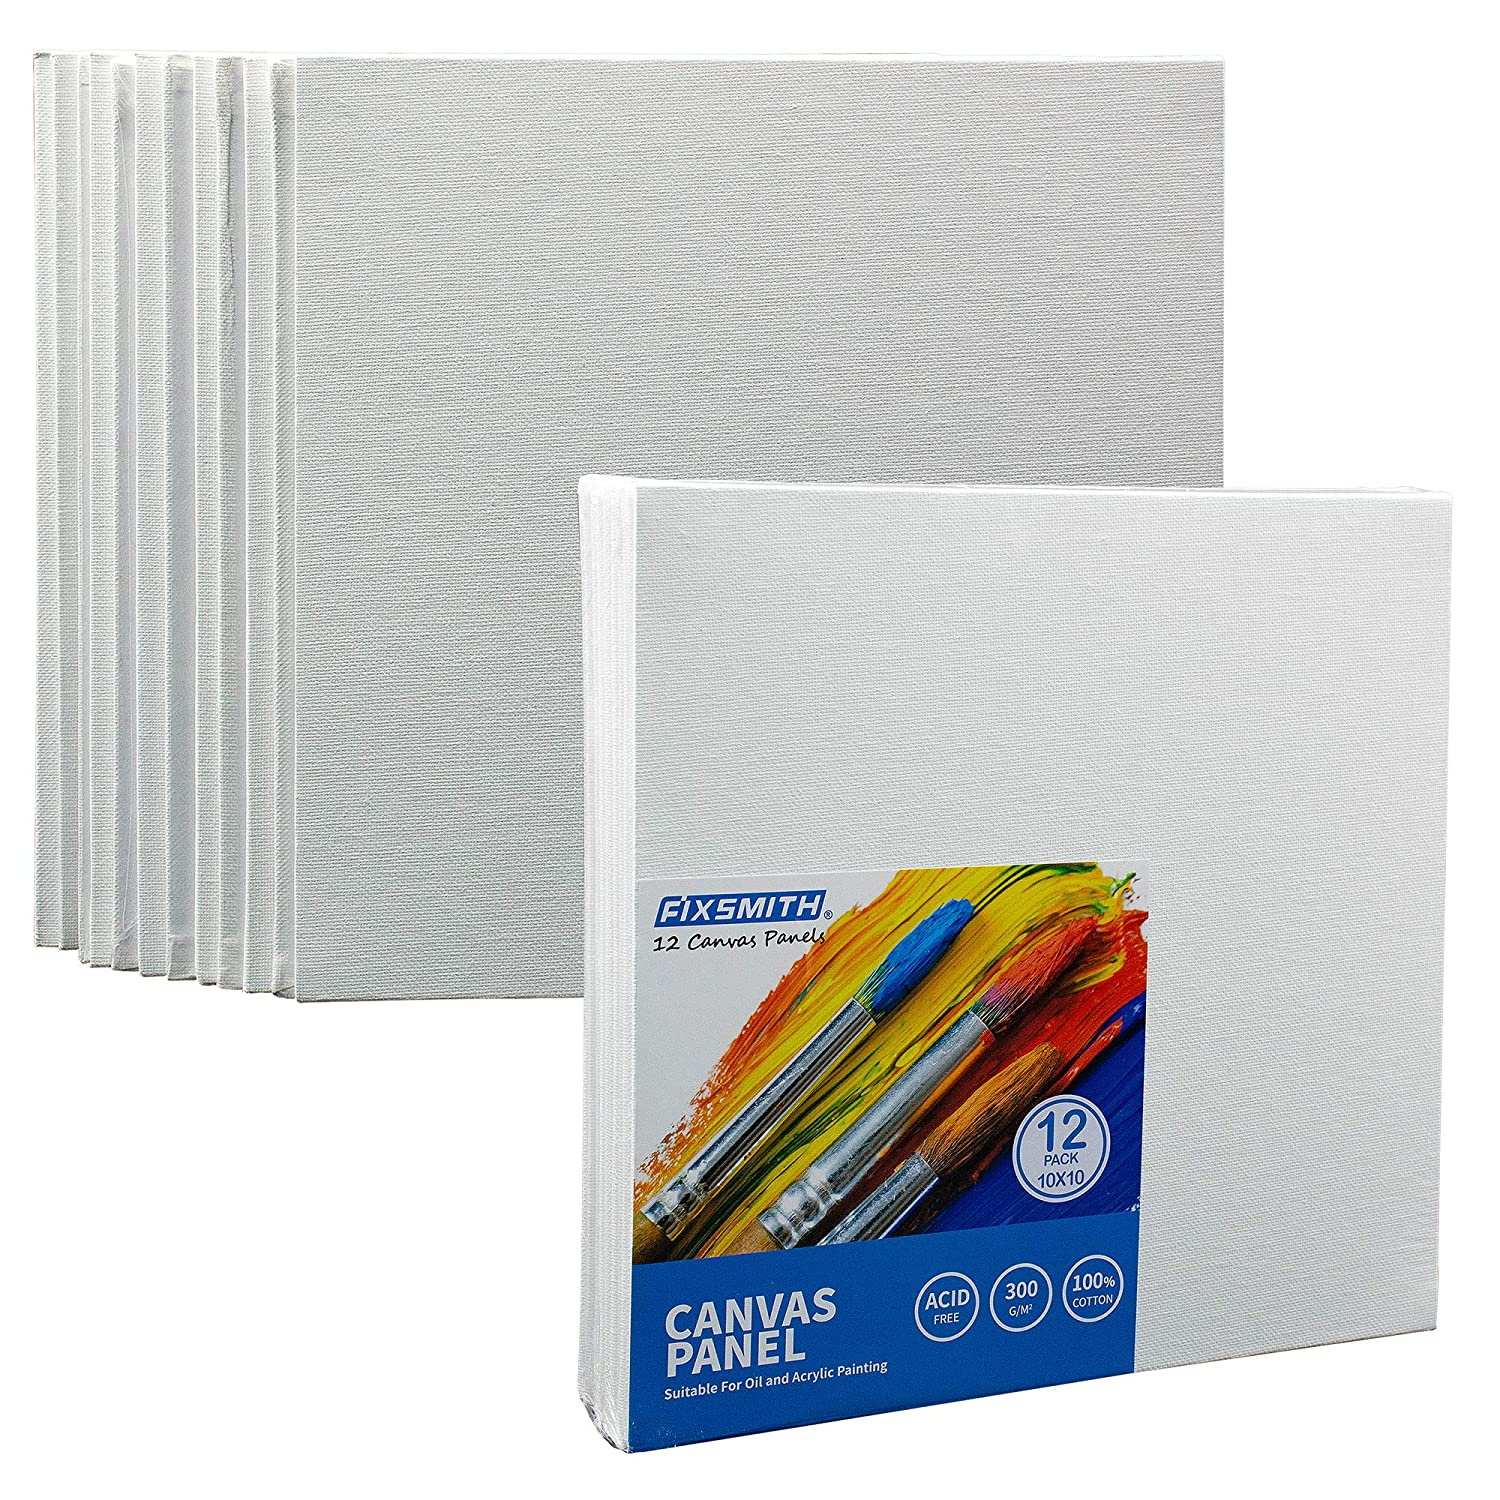 FIXSMITH Painting Canvas Panels - 6x6 inch Professional Quality Canvas Boards,Super Value 12 Pack,100% Cotton,Primed,Acid Free,for Professional Artists, Hobby Painters, Students & Kids.FM06270606 Automan Pro